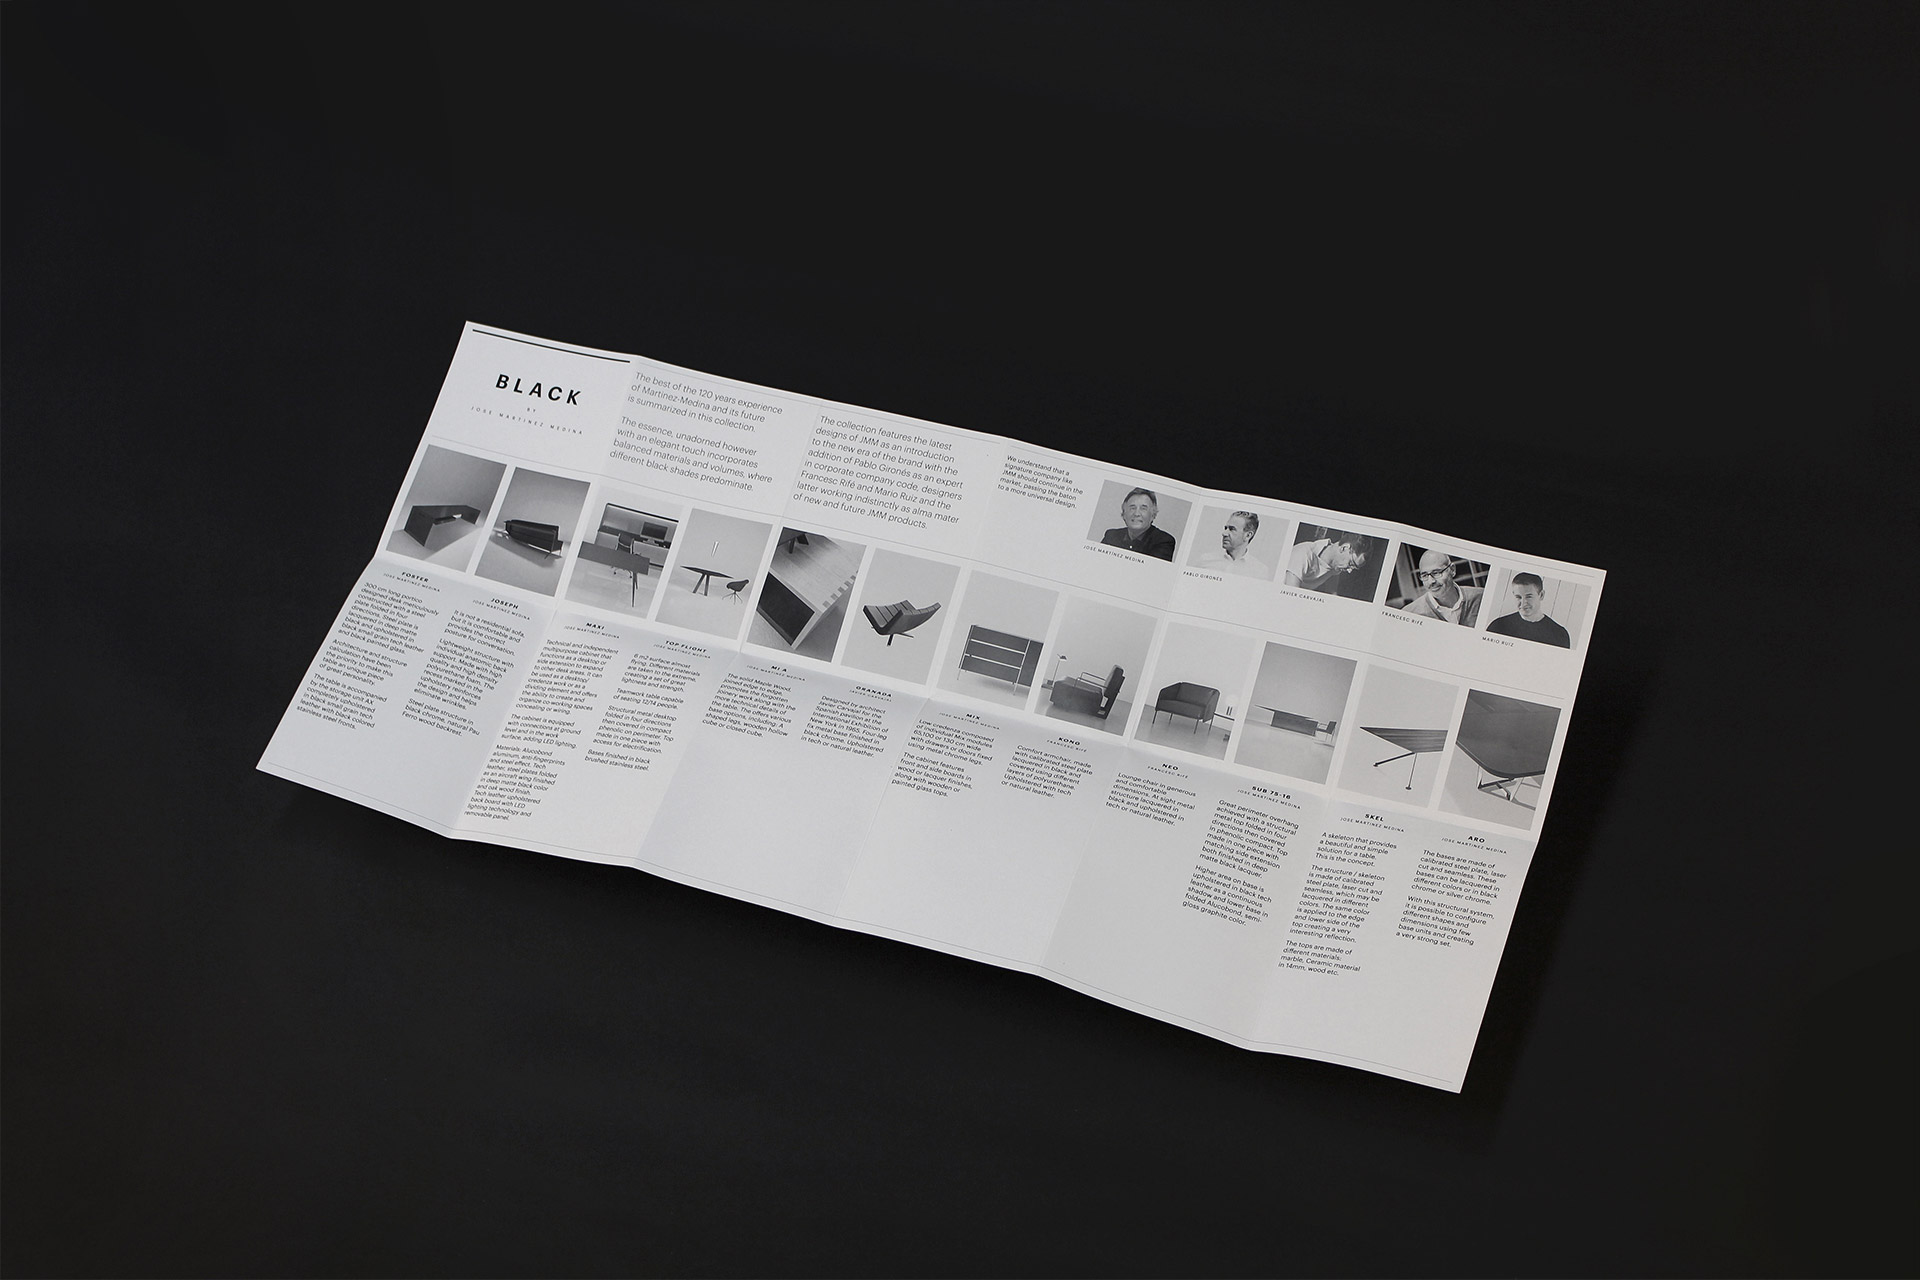 Fase, estudio de diseño gráfico. Brochure desplegable, Black Tone by JMM.